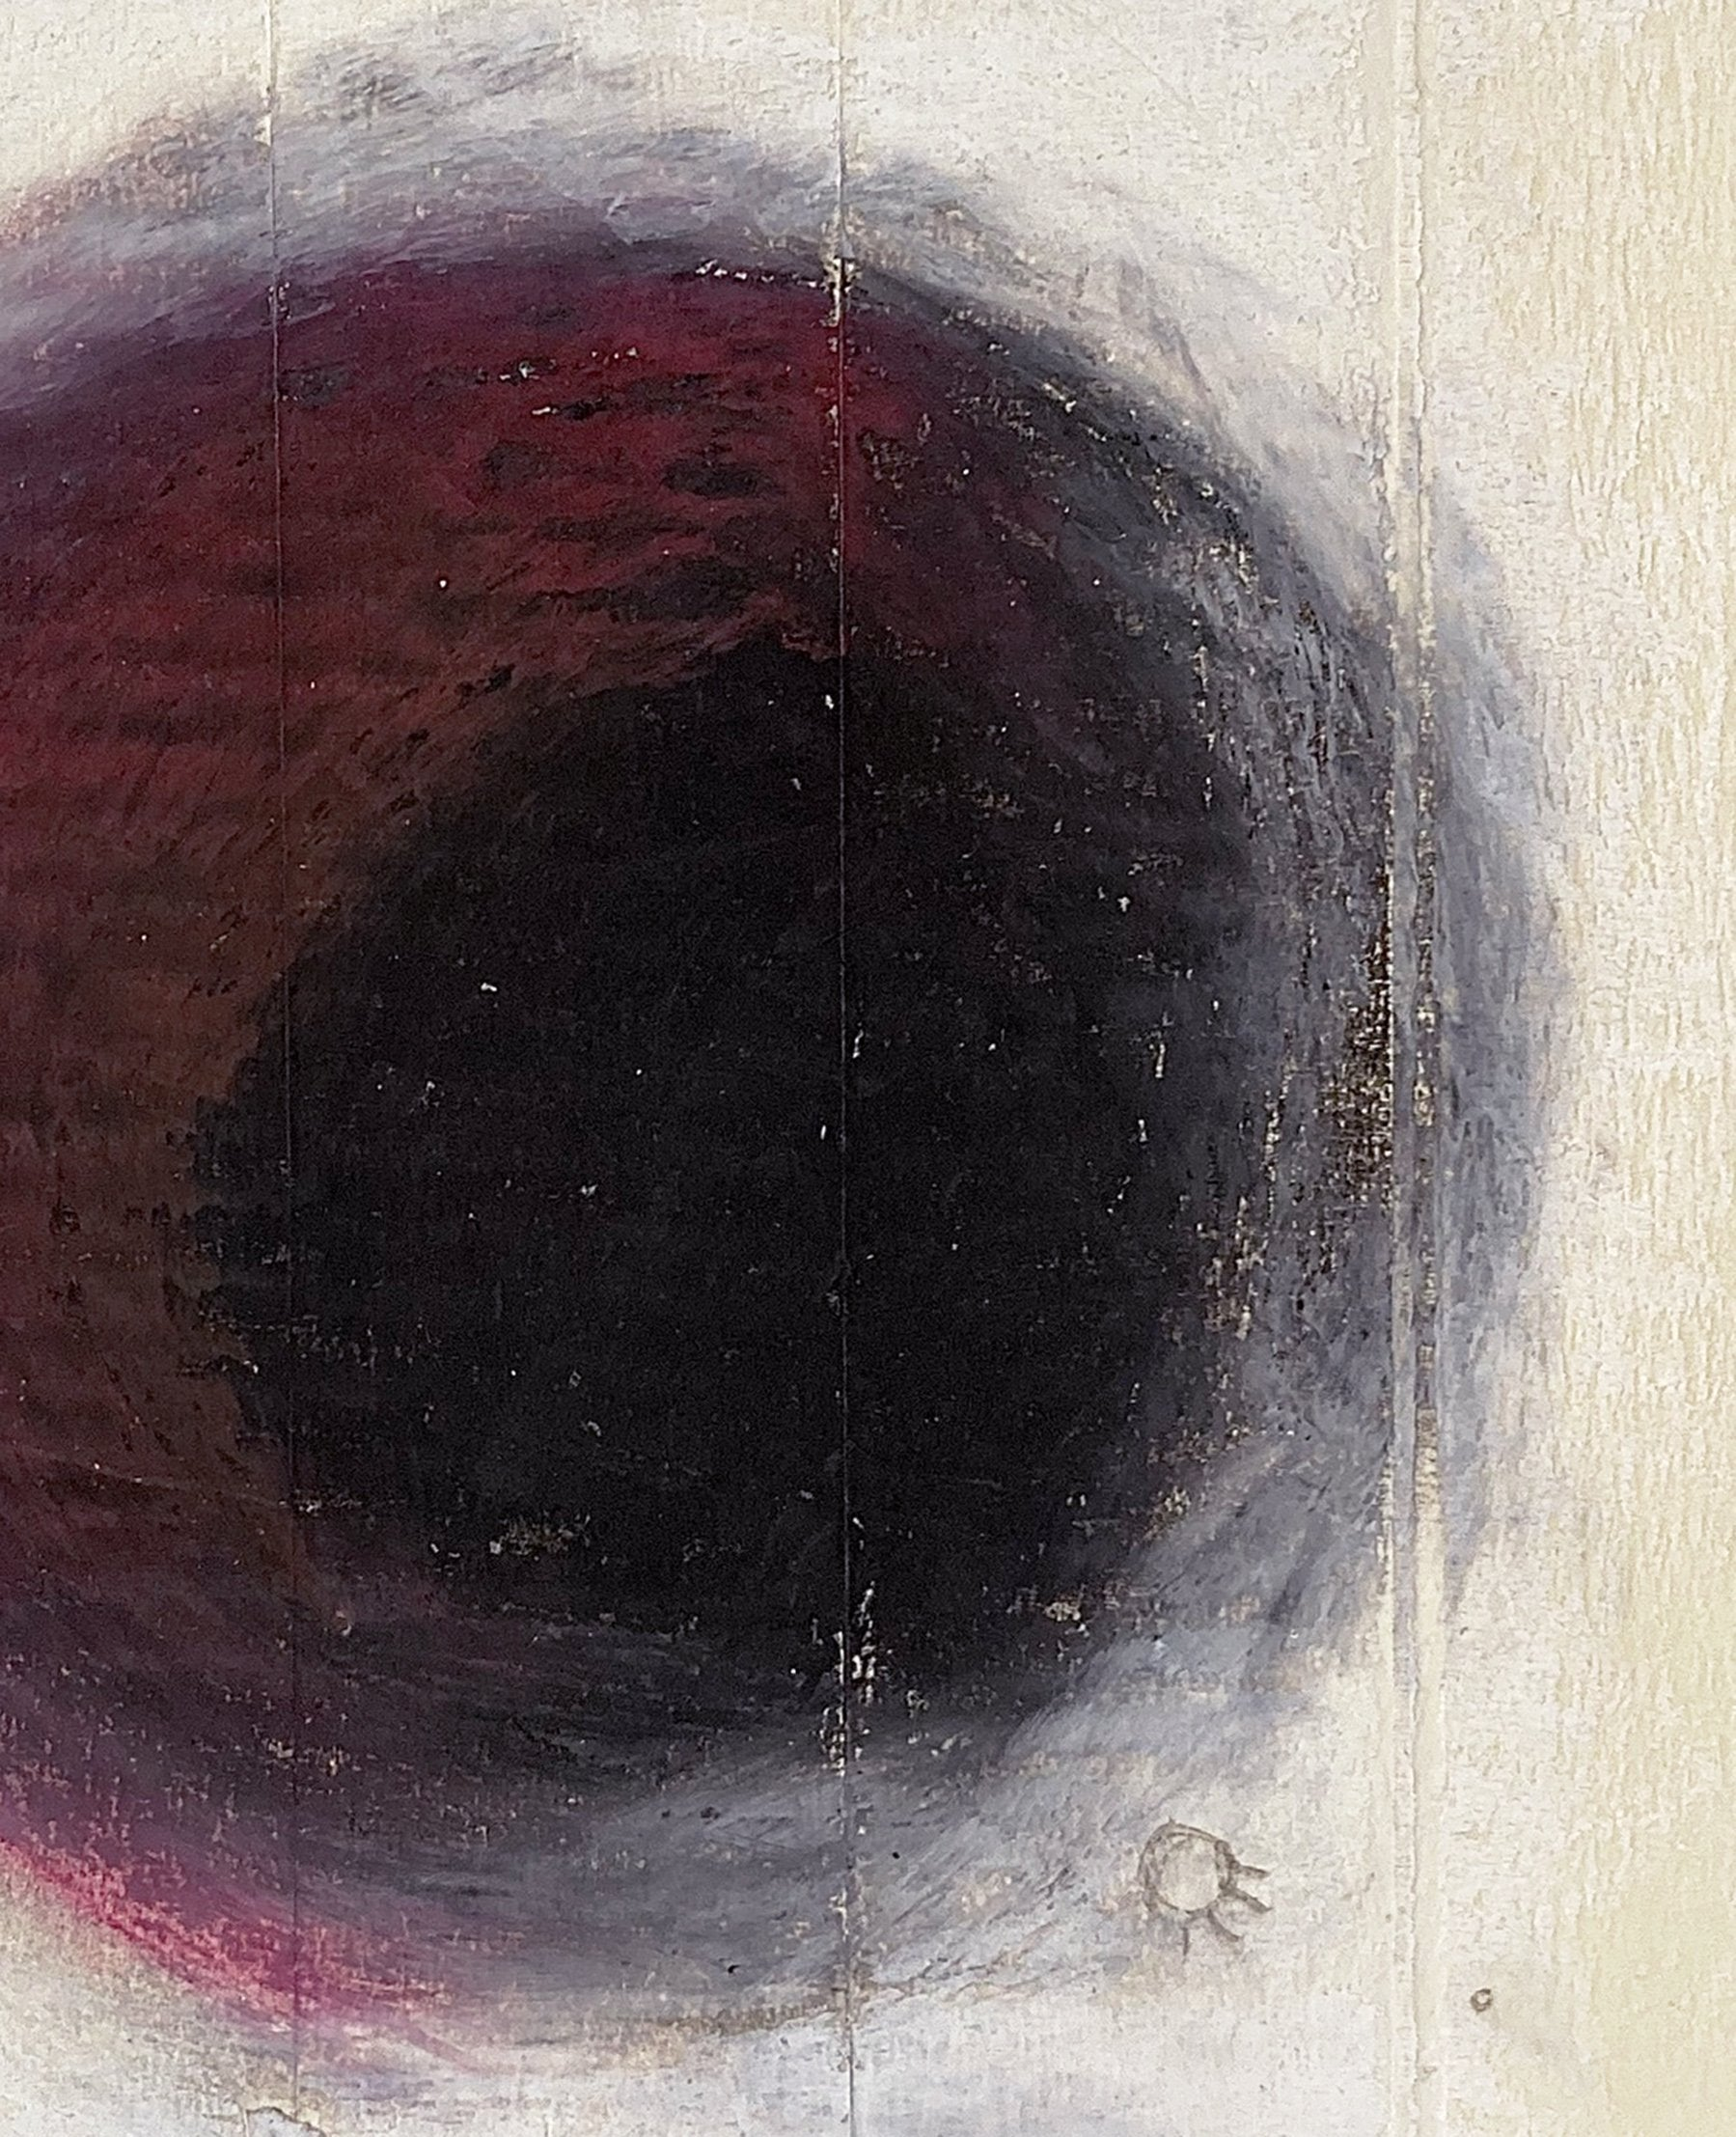 Detail of 'Shut The Fuck Up', an abstract artwork by contemporary artist Steven James Tunney